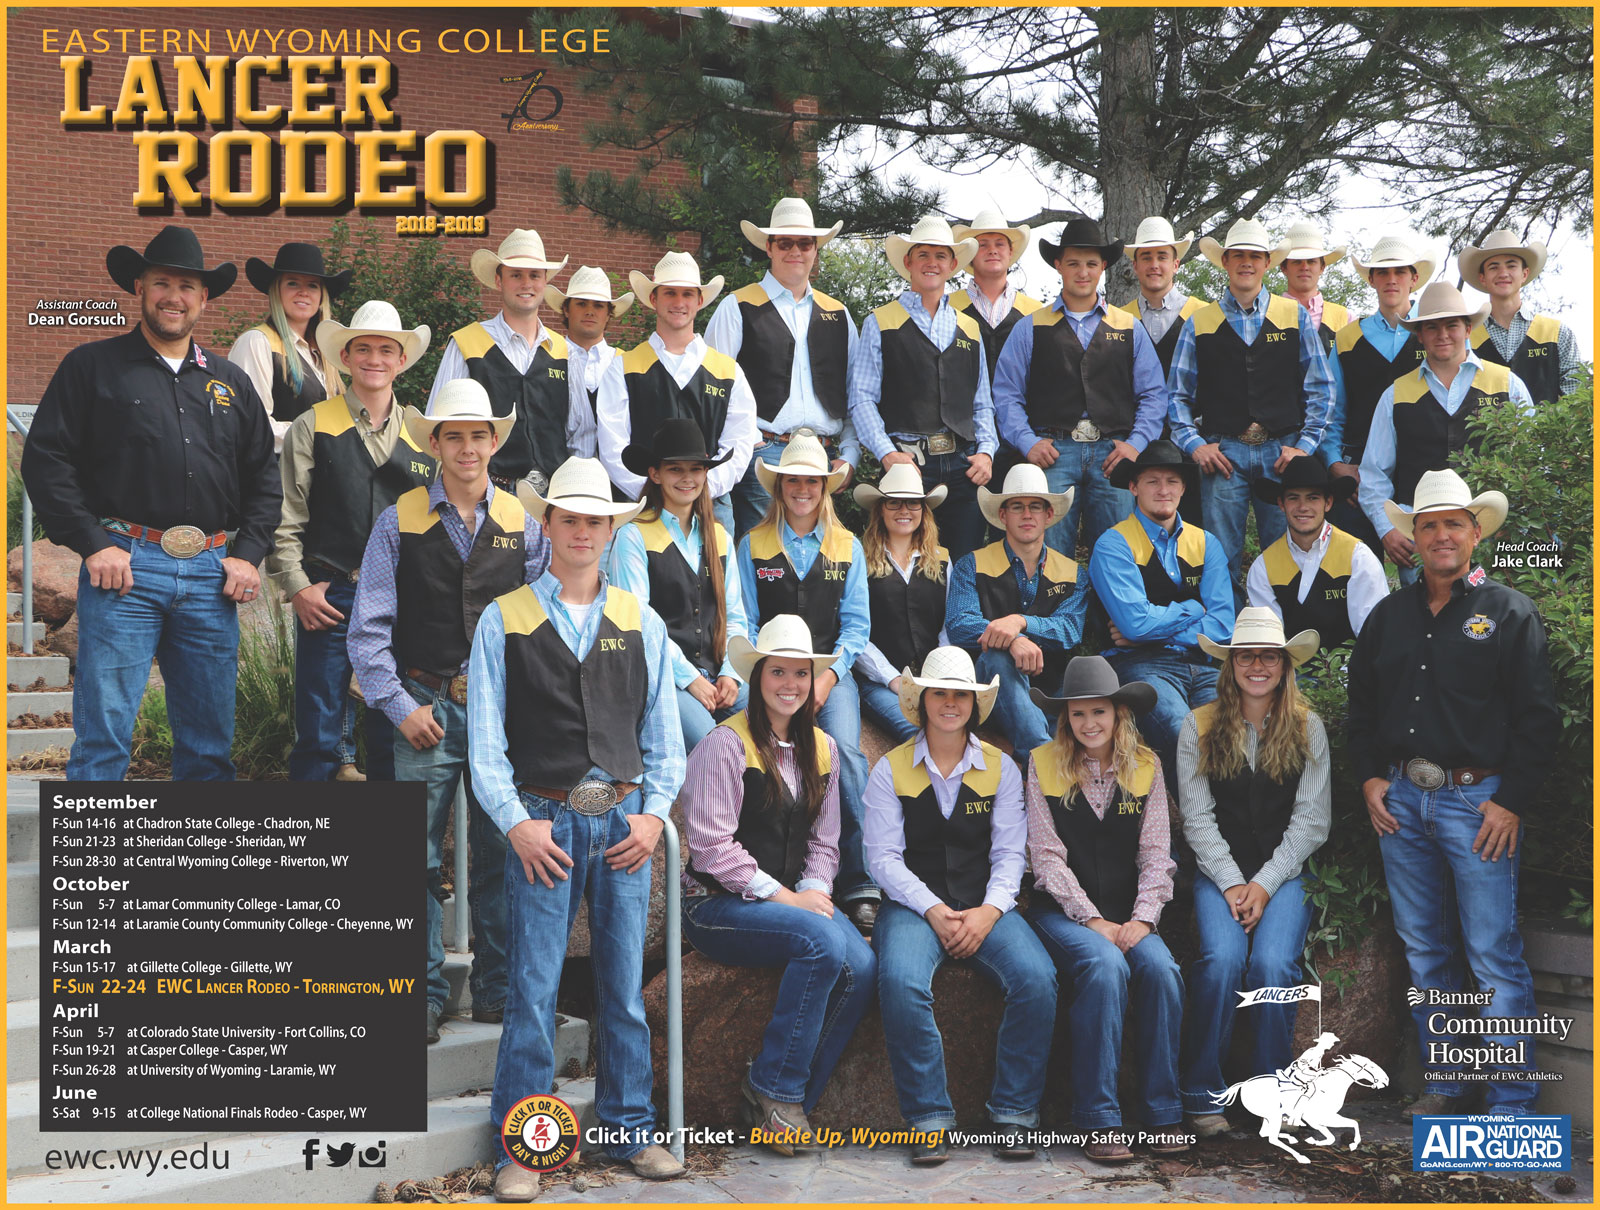 Eastern Wyoming College Lancer Rodeo Team